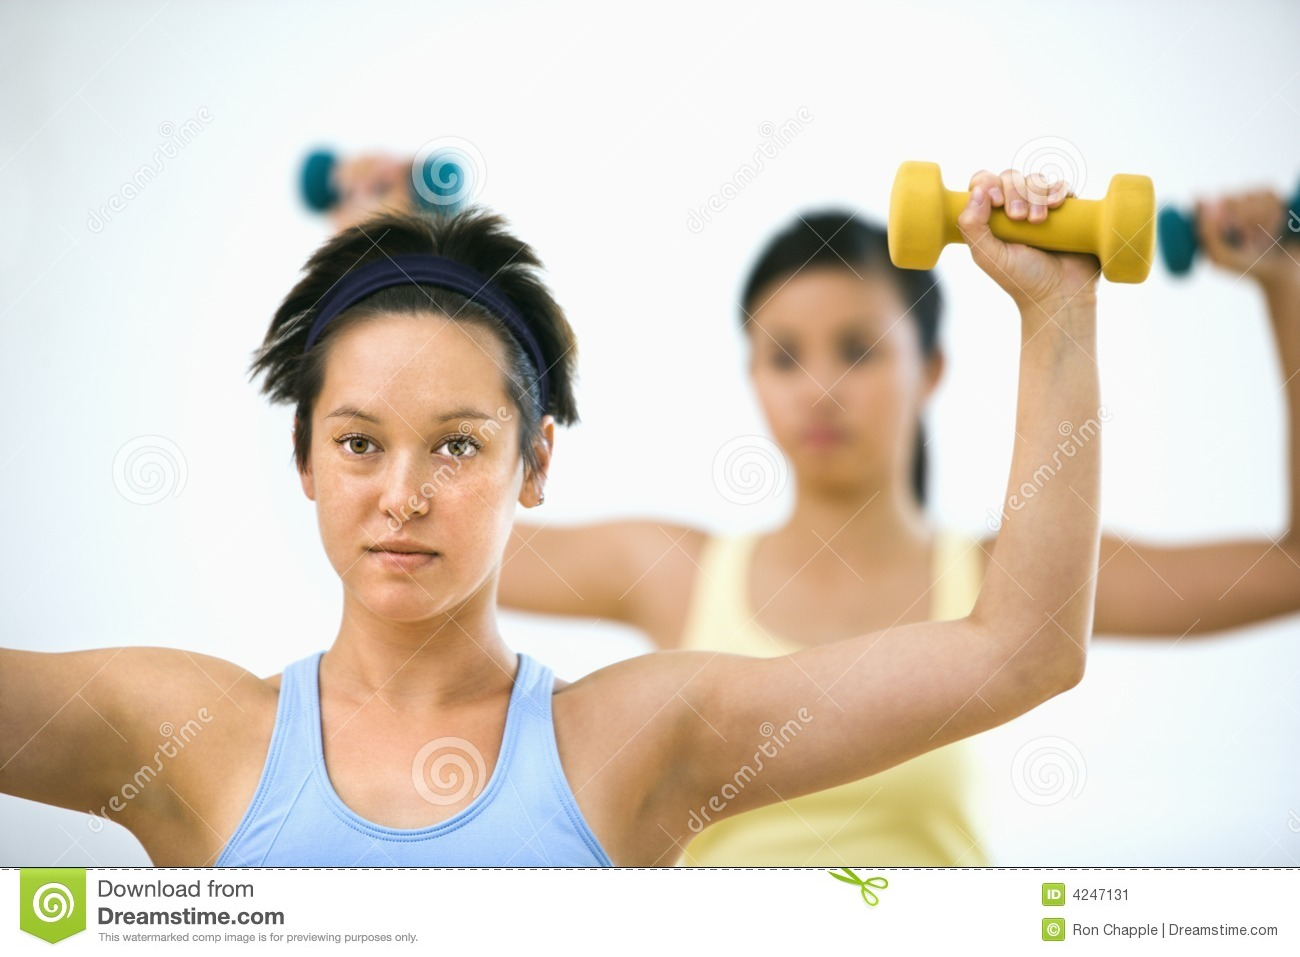 woman lifting weights hand